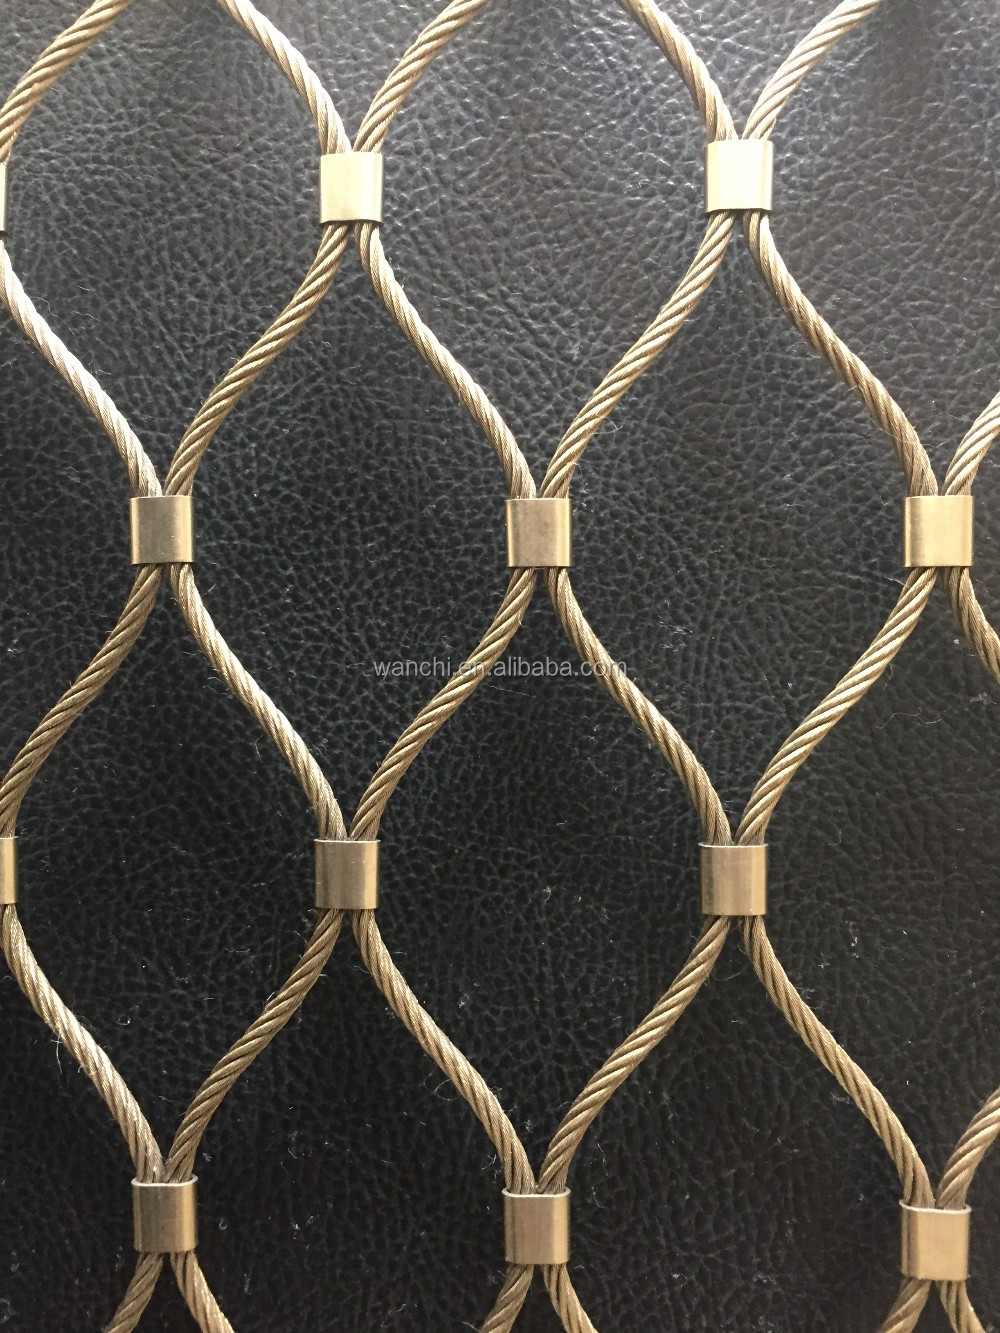 Wire Rope Lion Mesh, Wire Rope Lion Mesh Suppliers and Manufacturers ...